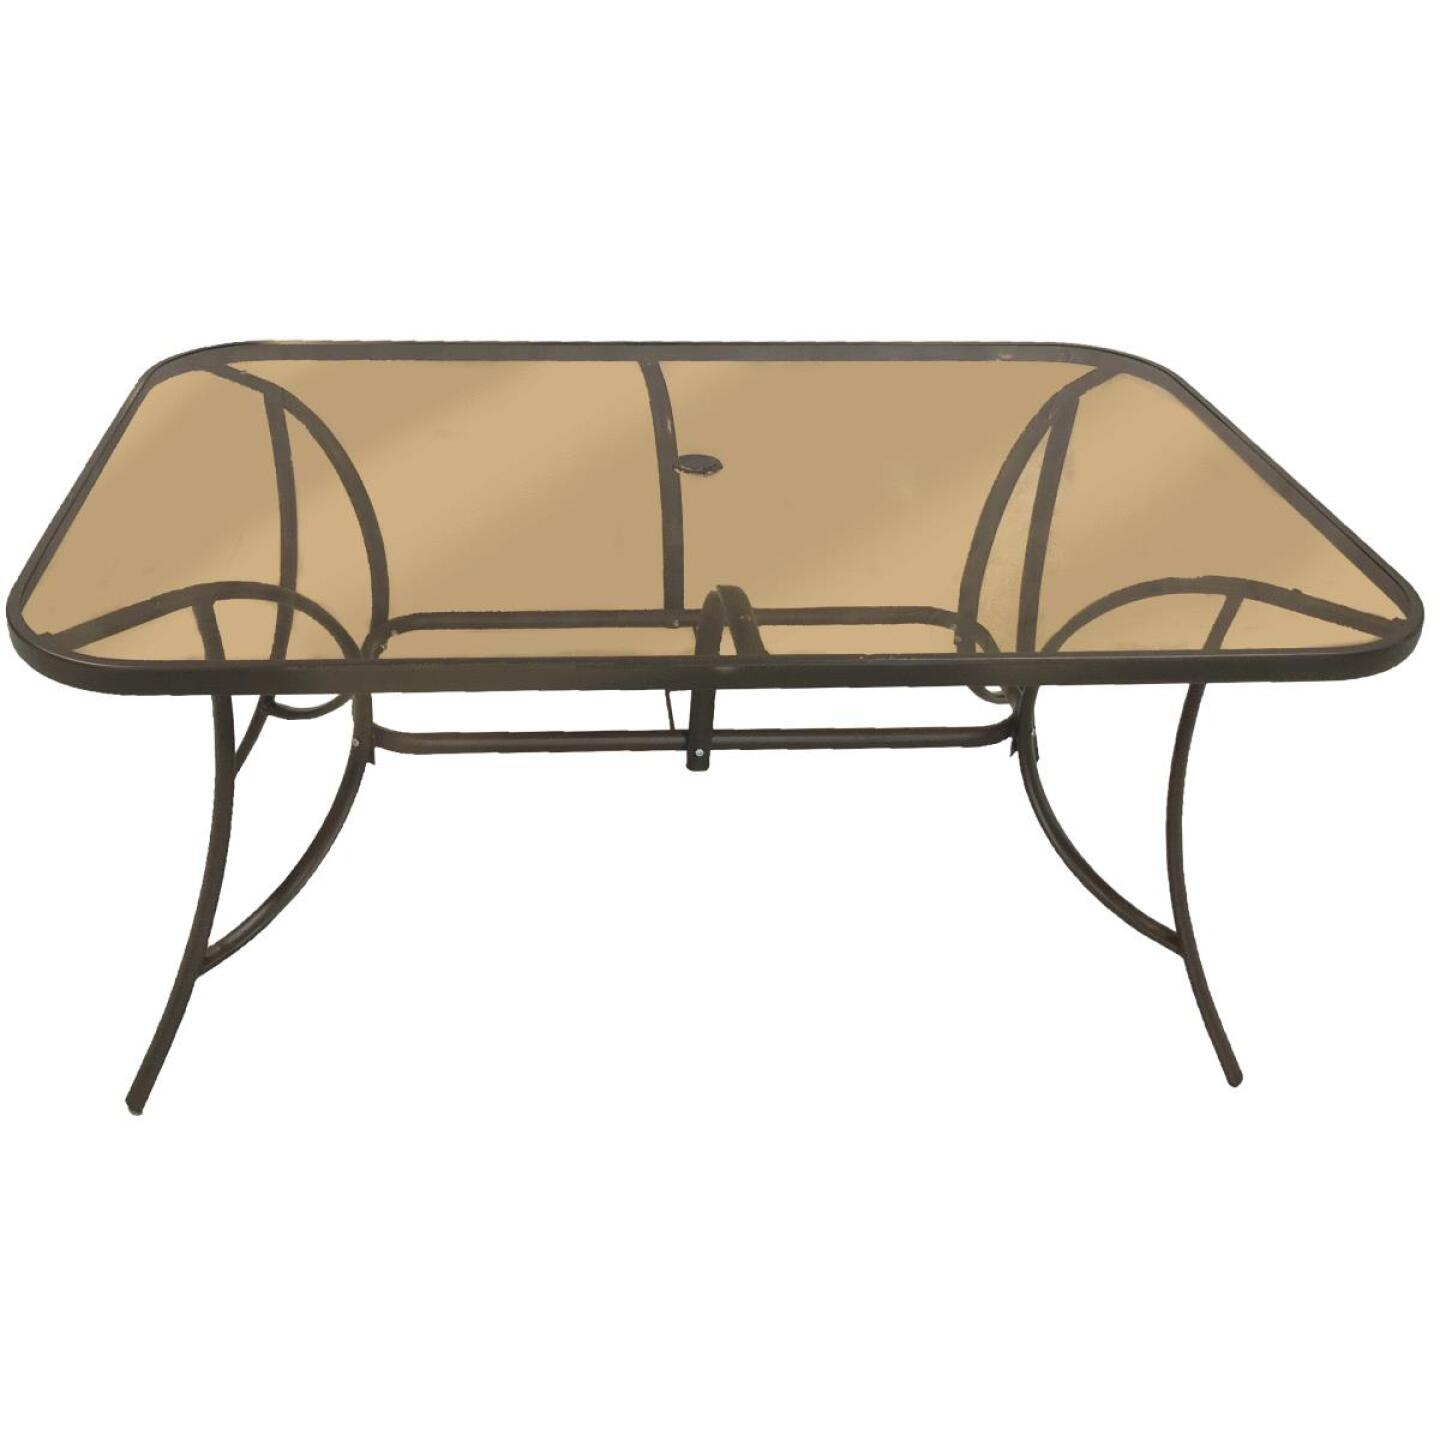 Outdoor Expressions Greenville 38 In. W. x 60 In. L. Rectangle Brown Steel Tinted Glass Table Image 1